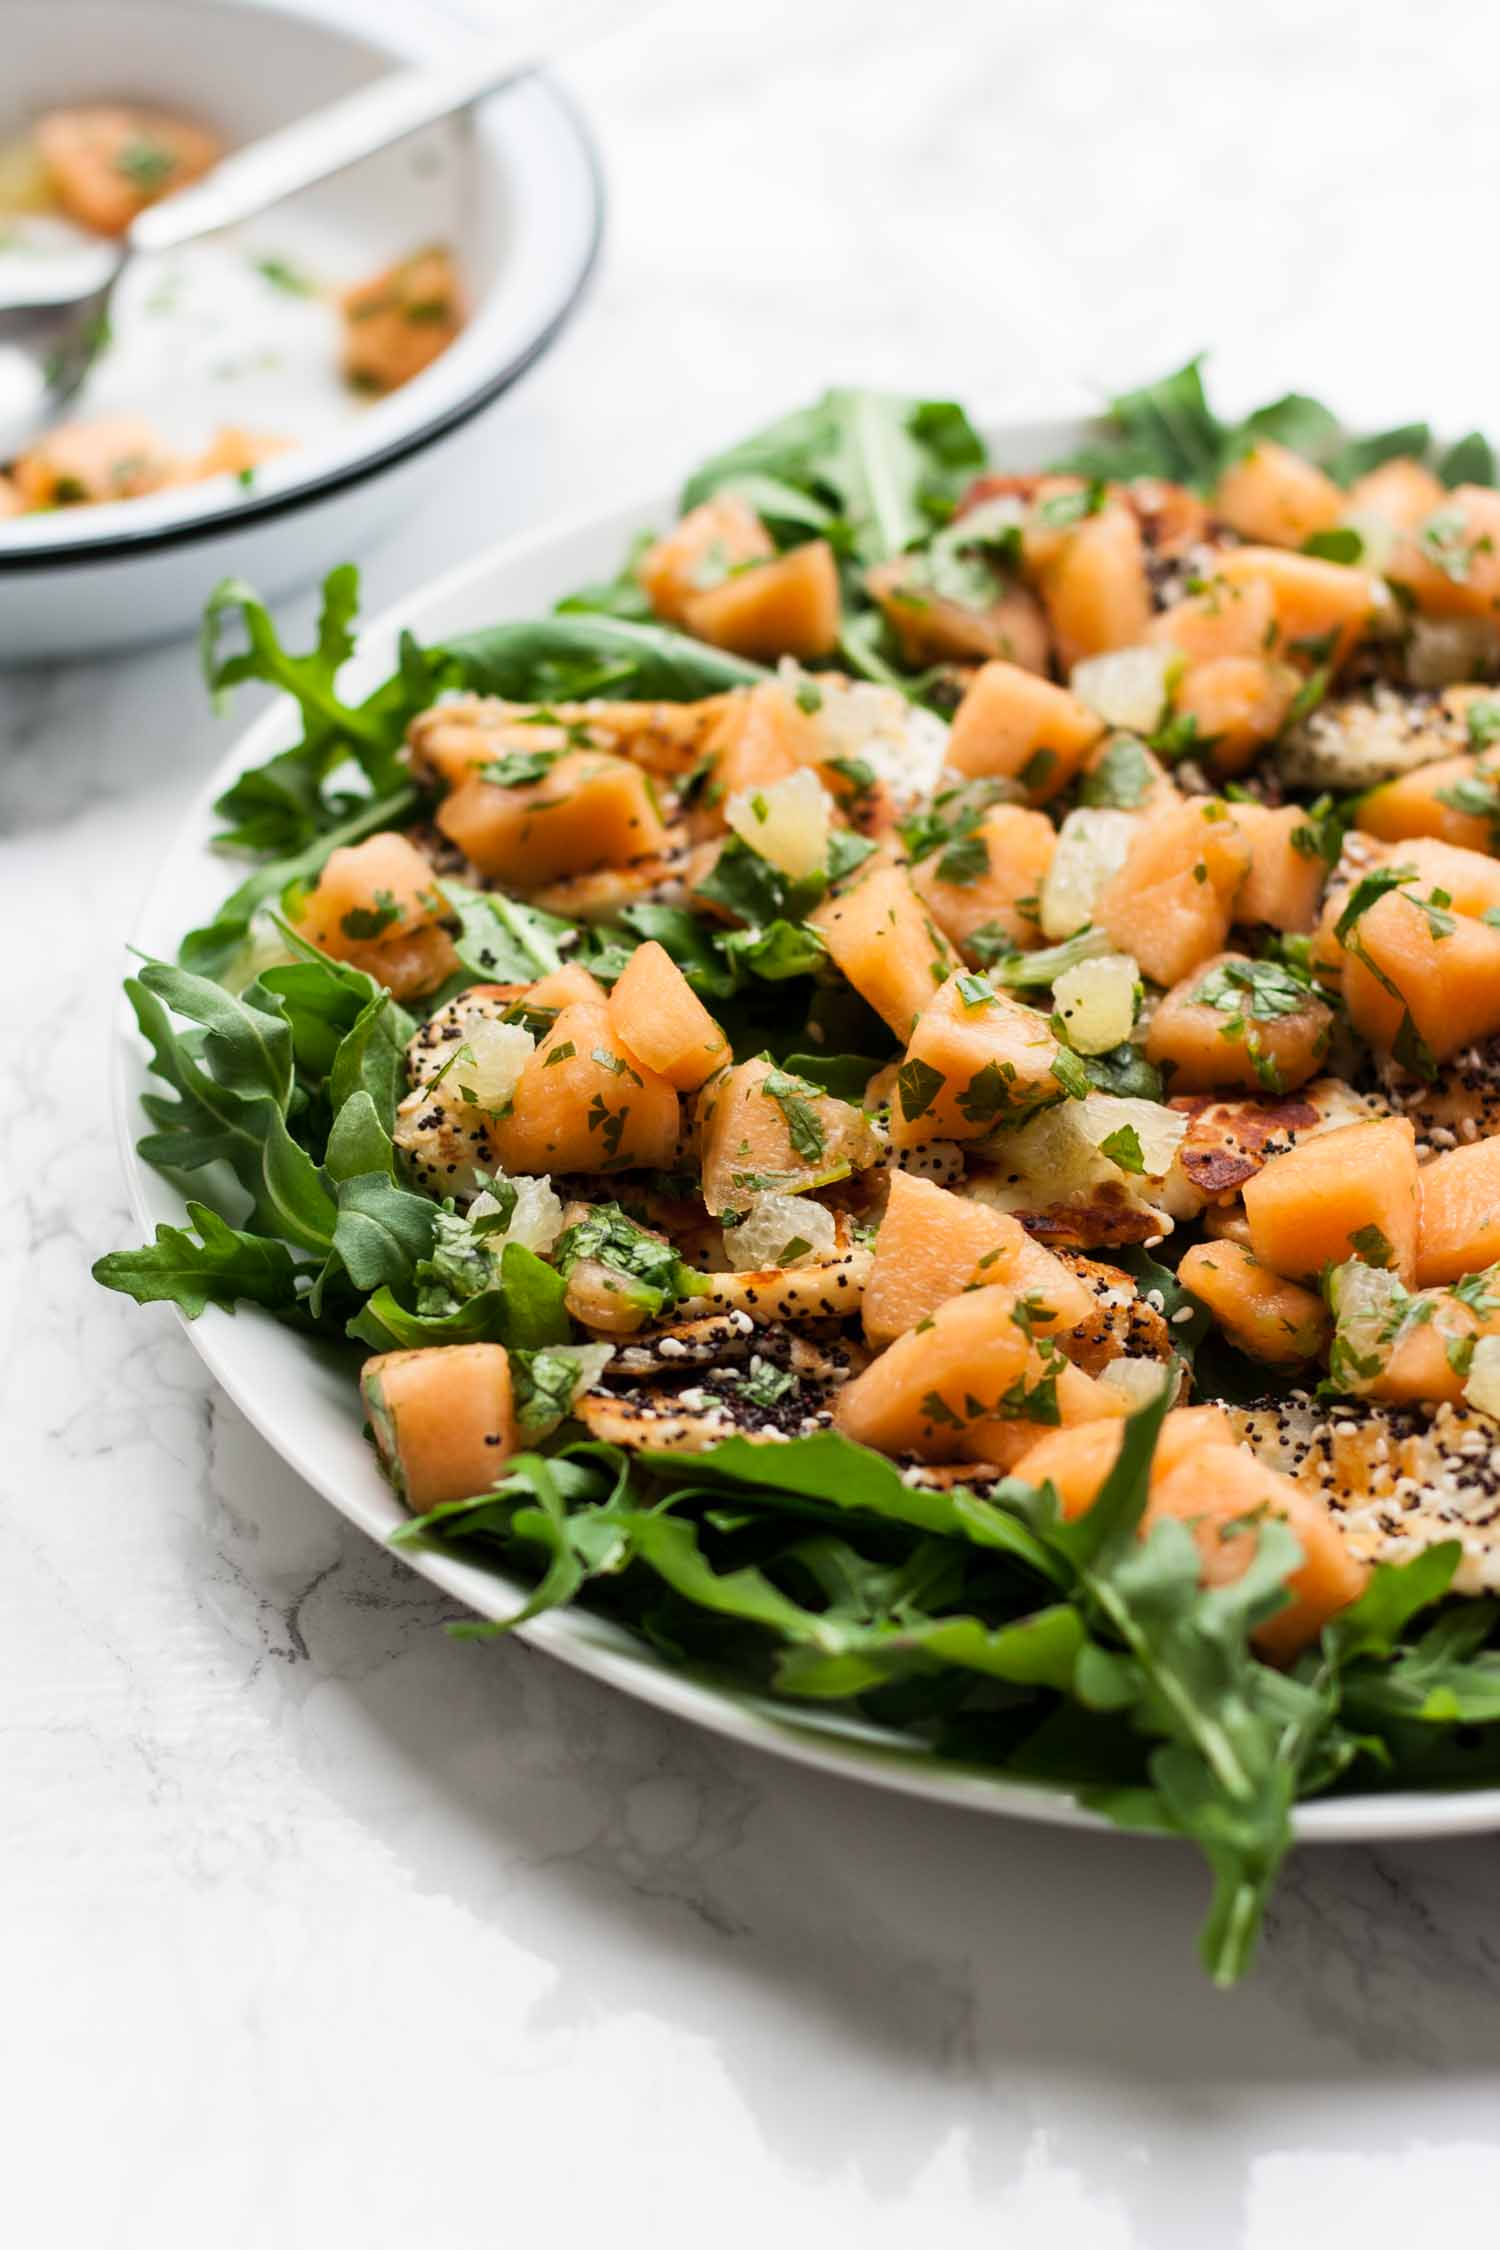 Cantaloupe, Lime and Halloumi Salad - a quick and simple appetizer/lunch recipe that is perfect for summer! | eatloveeats.com